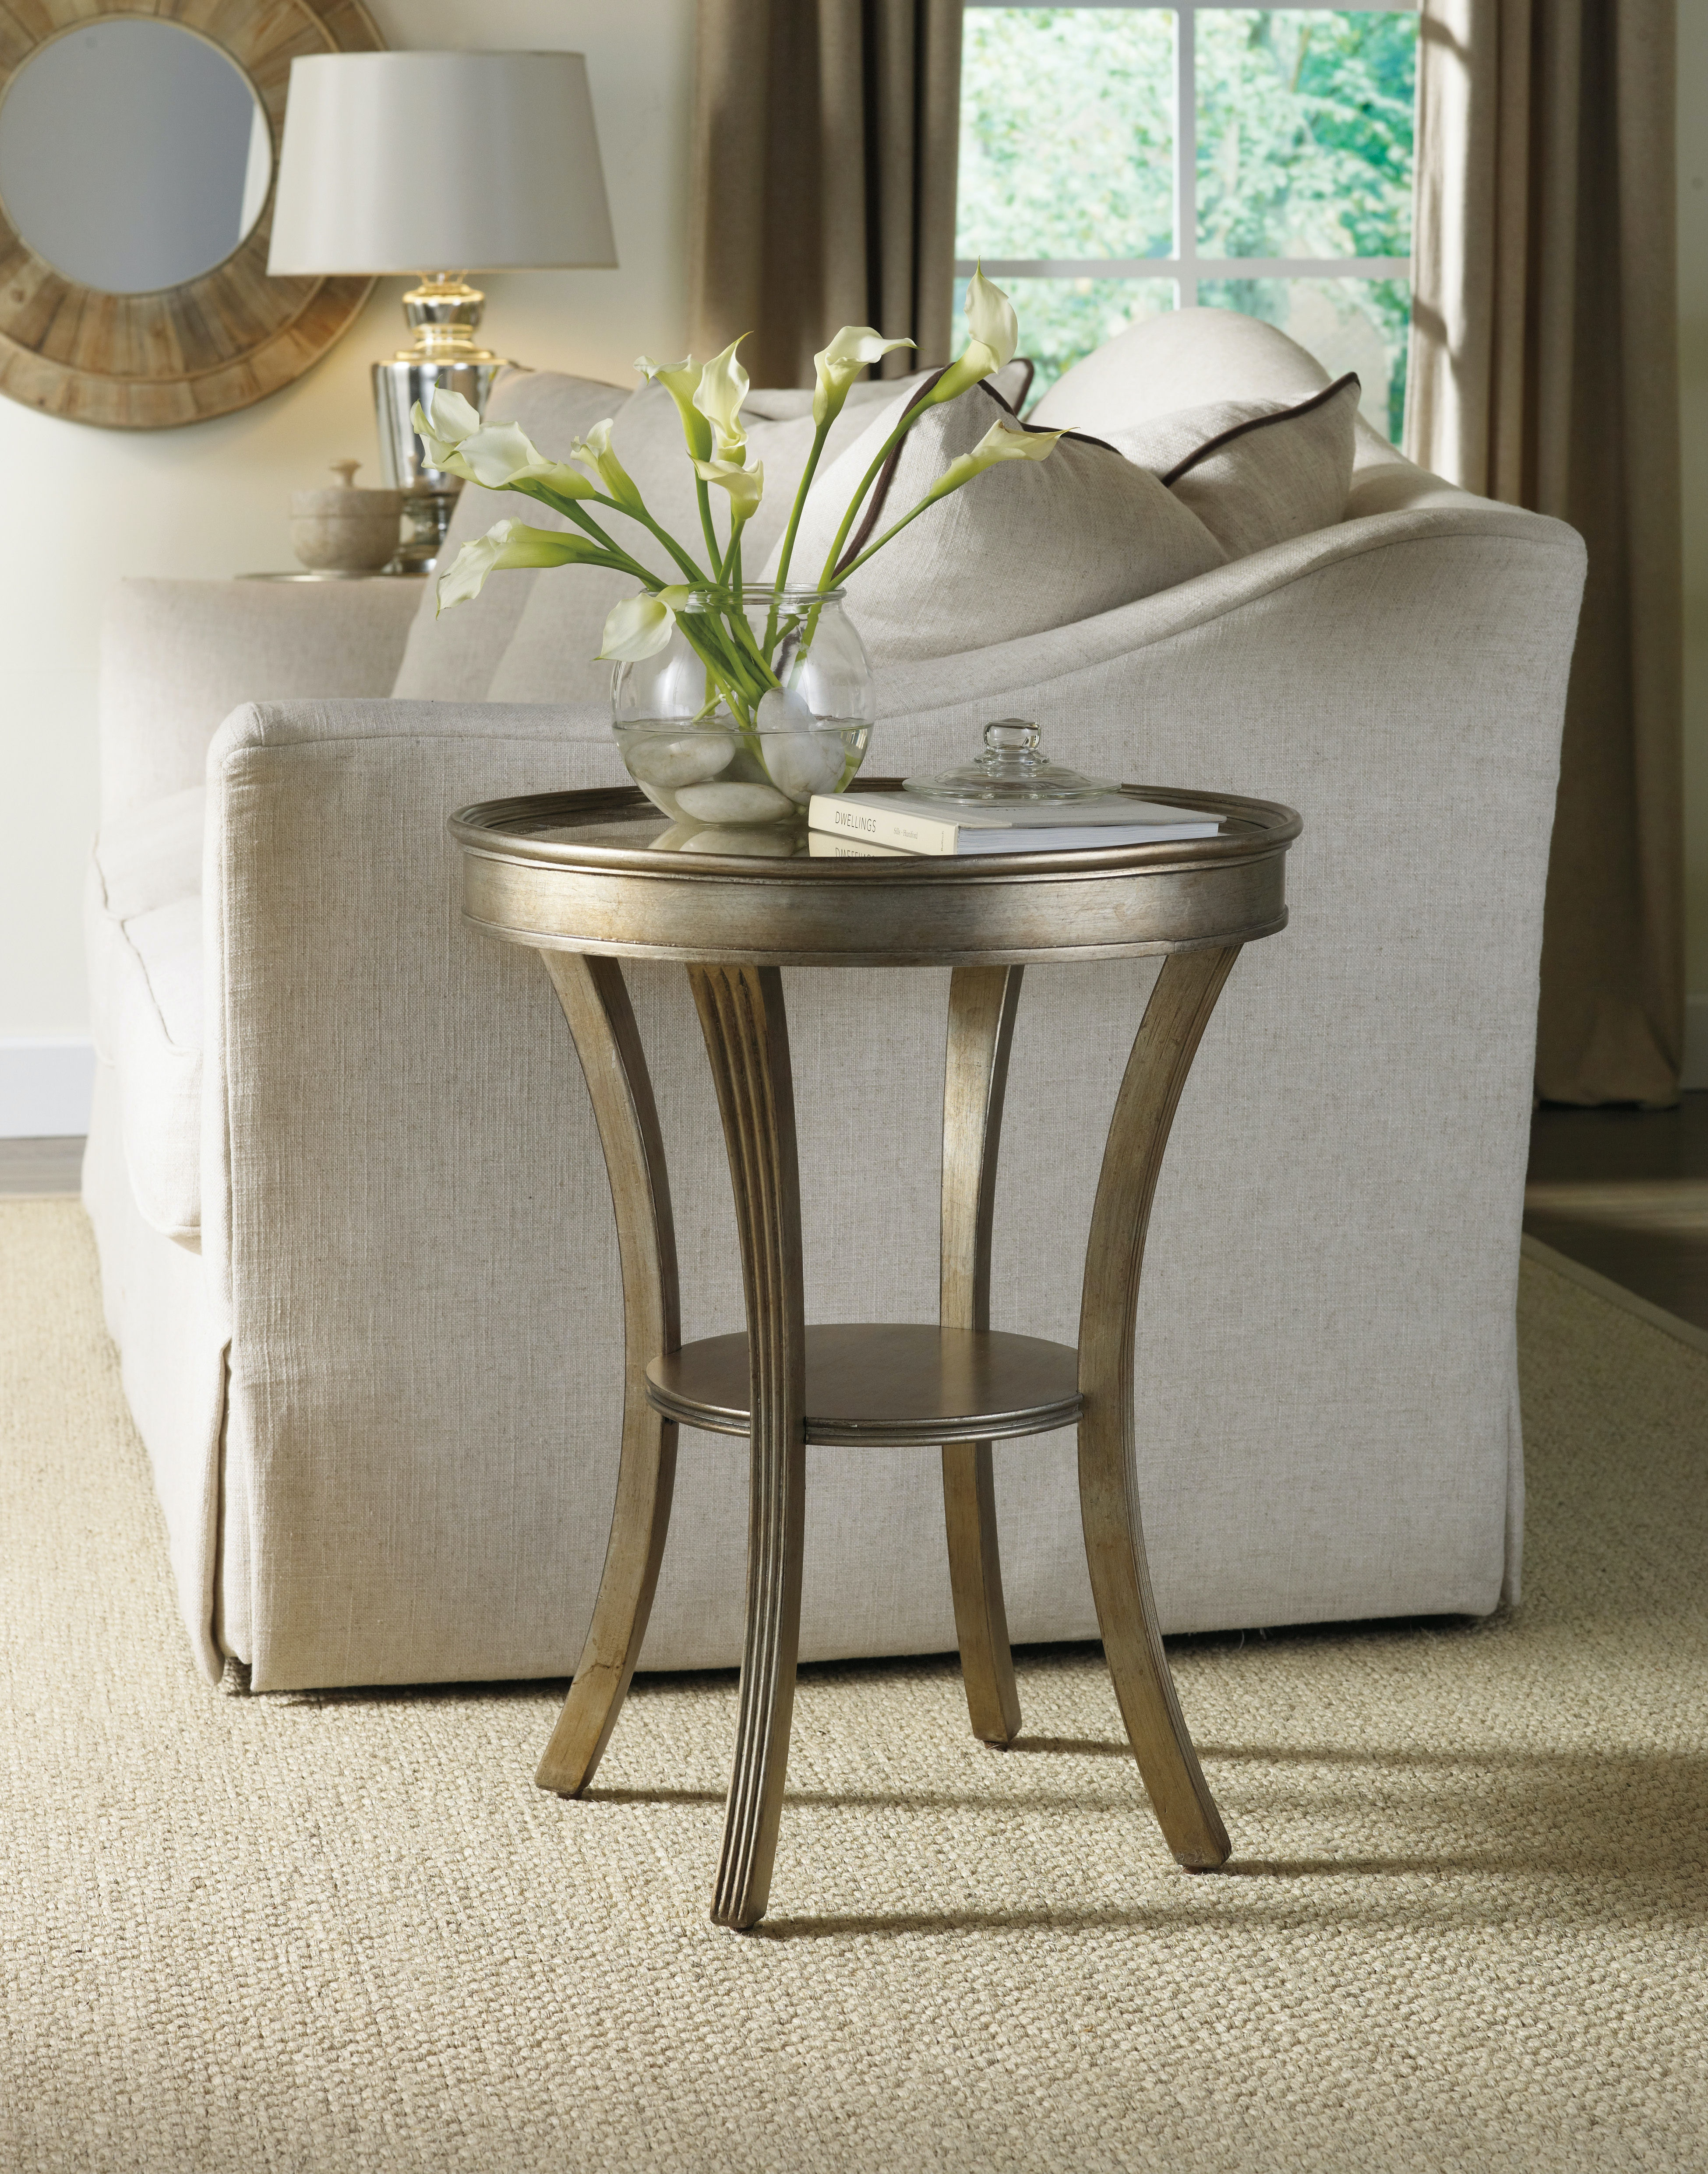 Hooker Furniture Sanctuary Round Mirrored Accent Table   Visage 3014 50001